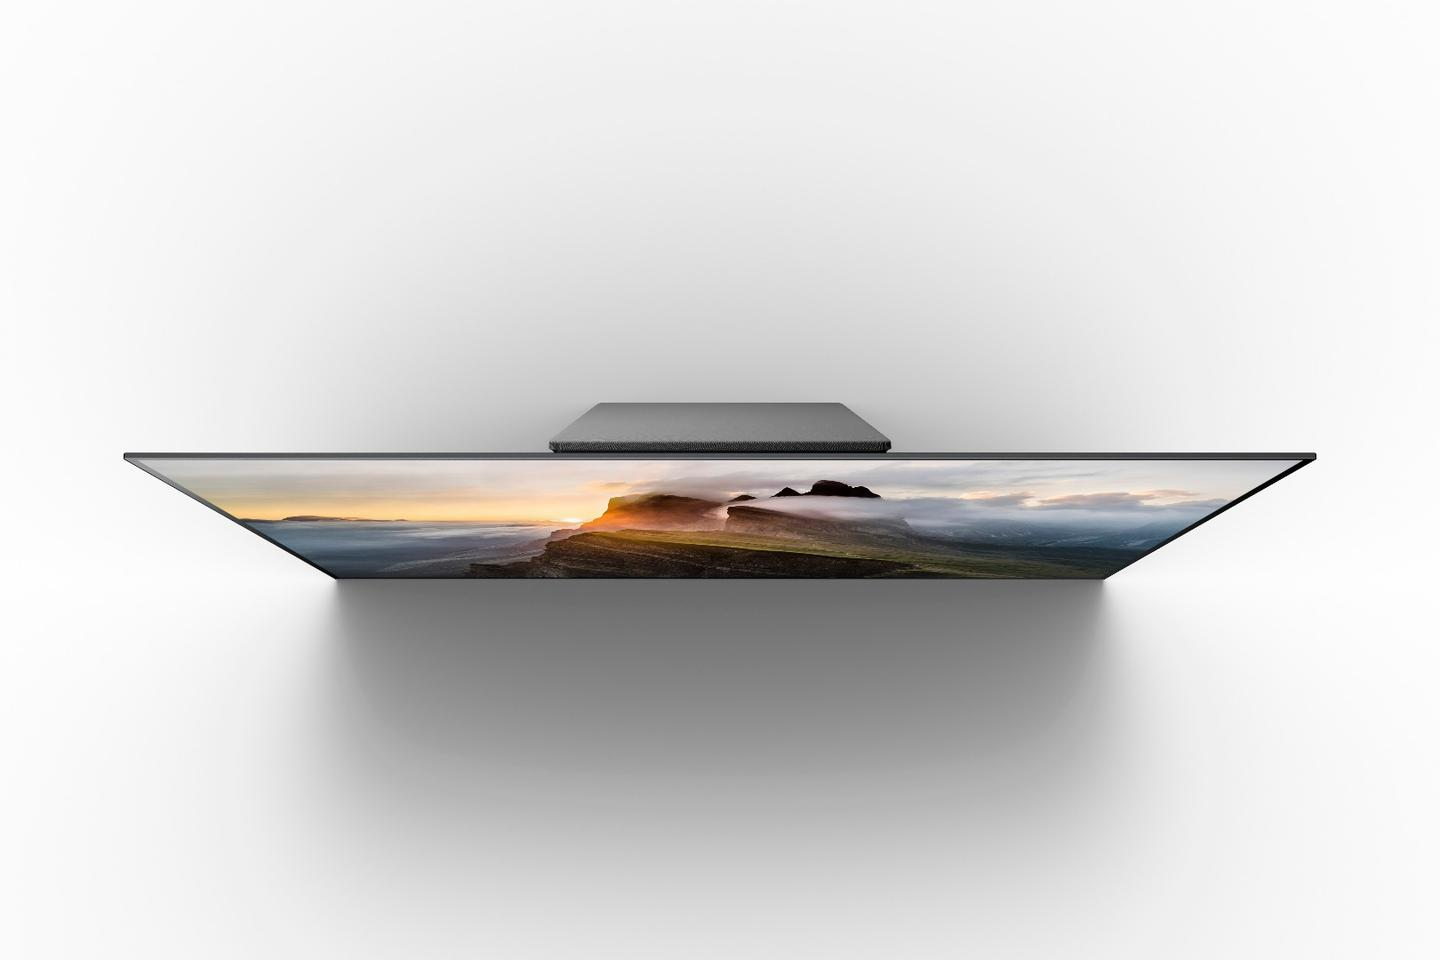 Sony's new flagship A1E Bravia OLED Series boasts aworld-first Acoustic Surface sound system